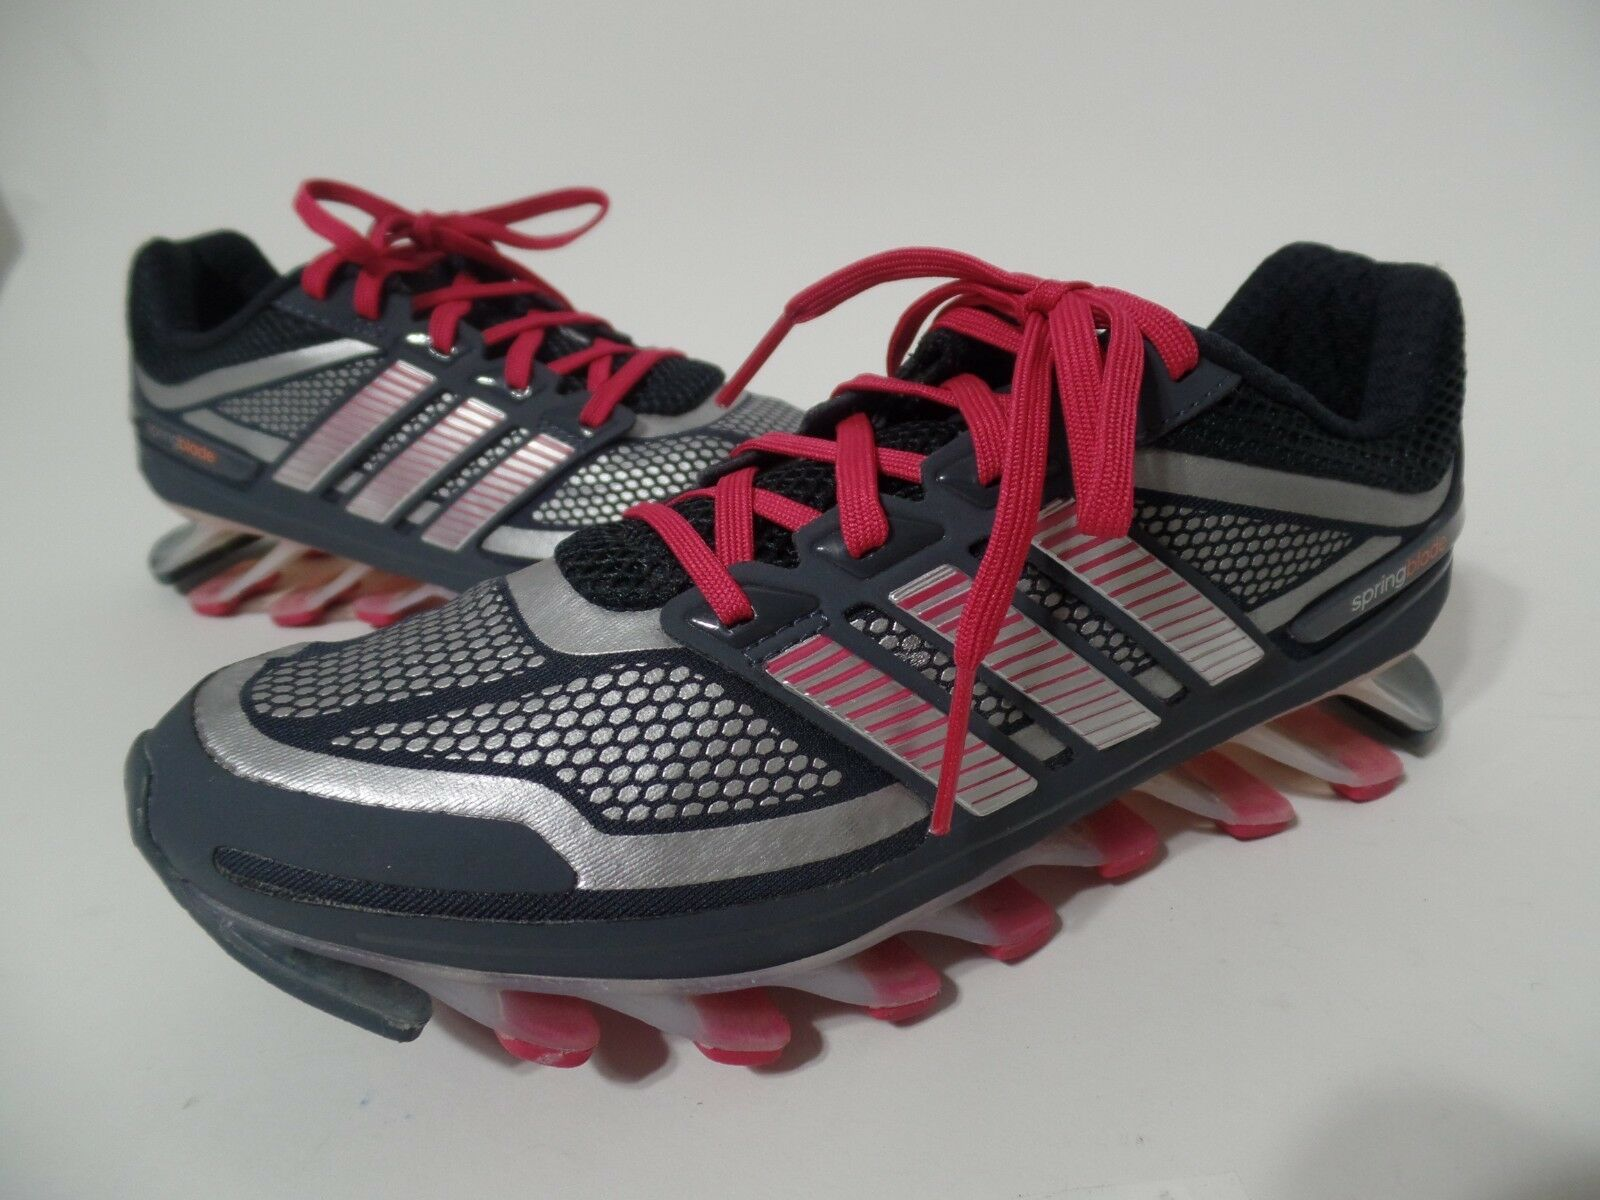 ADIDAS Grey Pink Spring Blade Adipower Running Trainers Womens Size US 6